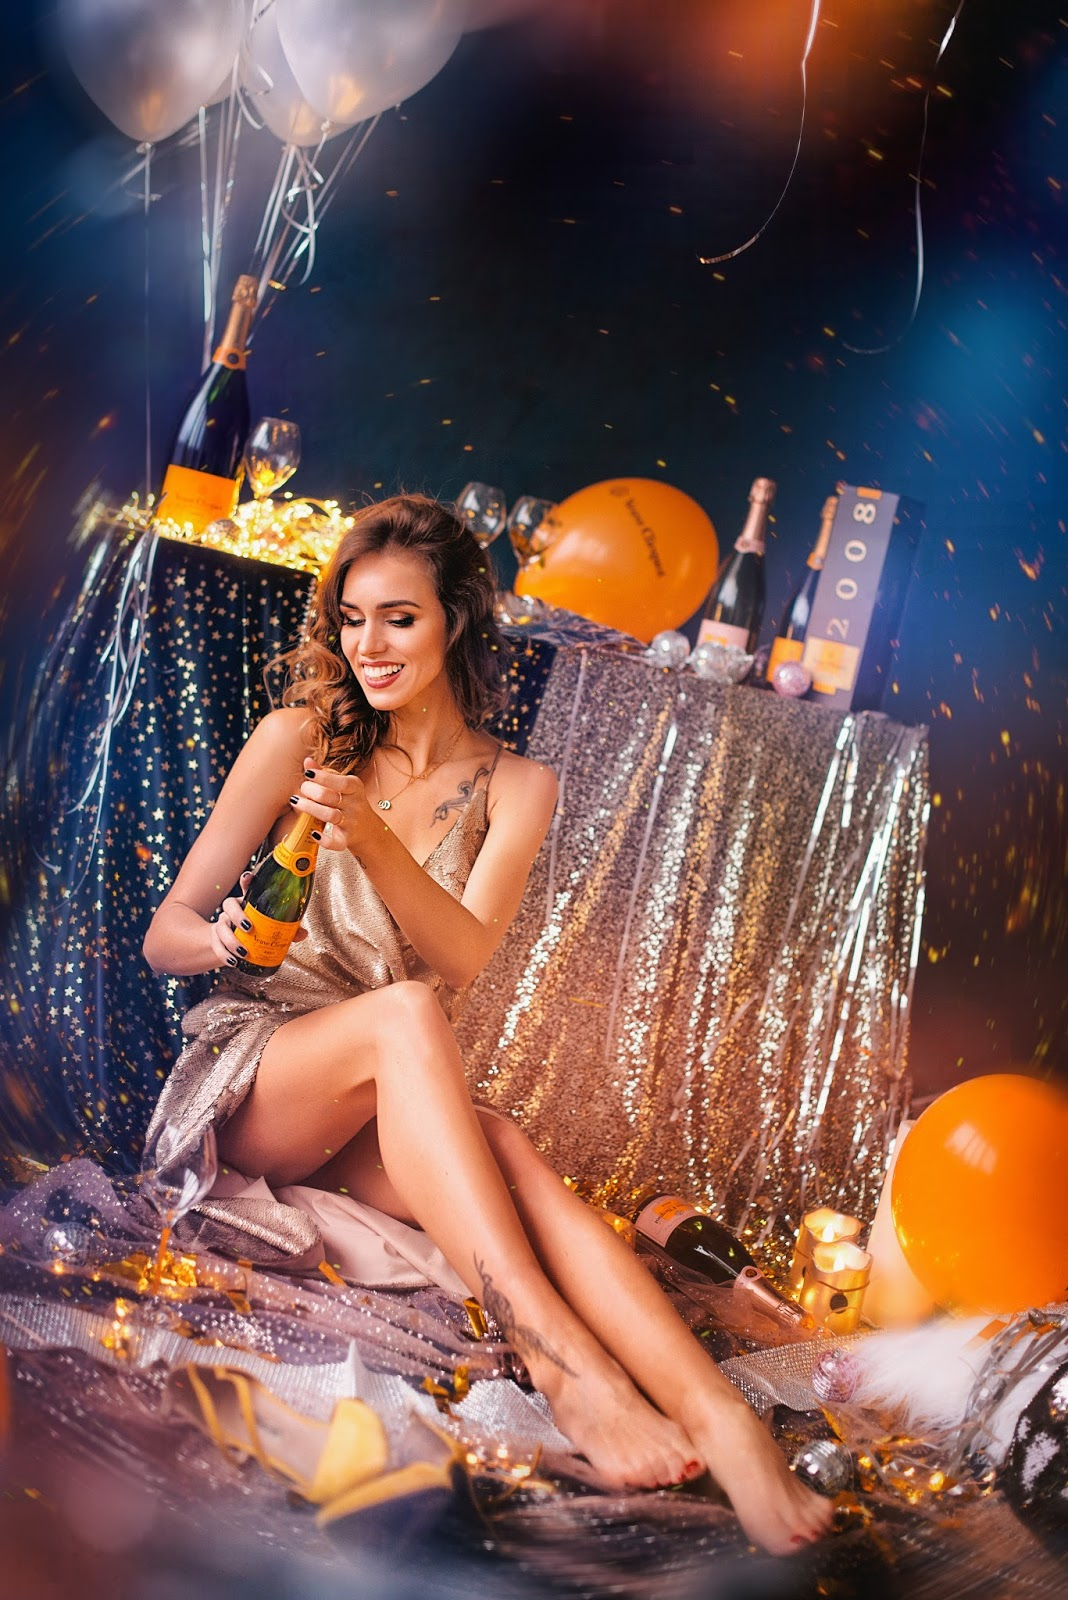 veuve clicquot champagne celebration party glitter balloons photography